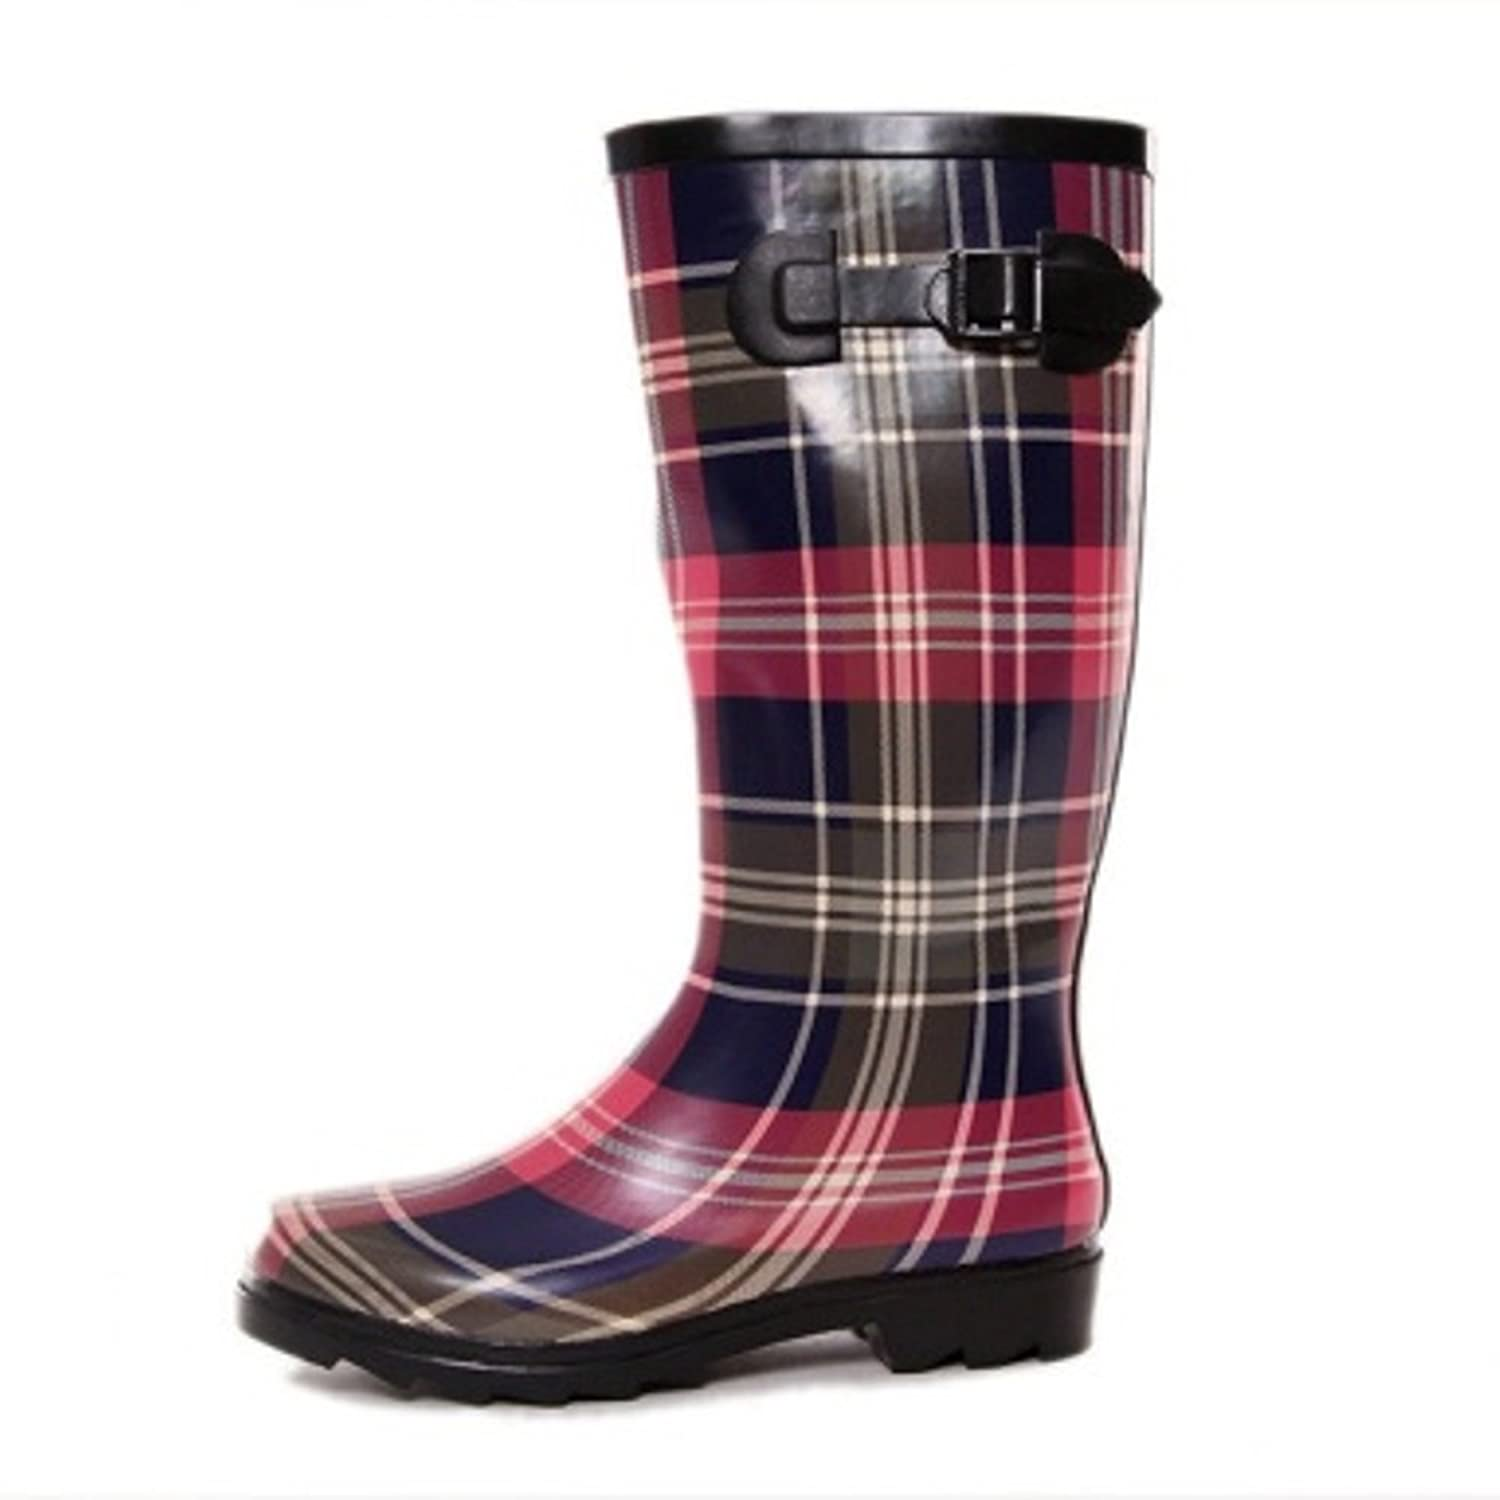 AimTrend Womens Waterproof Welly Rain Boots